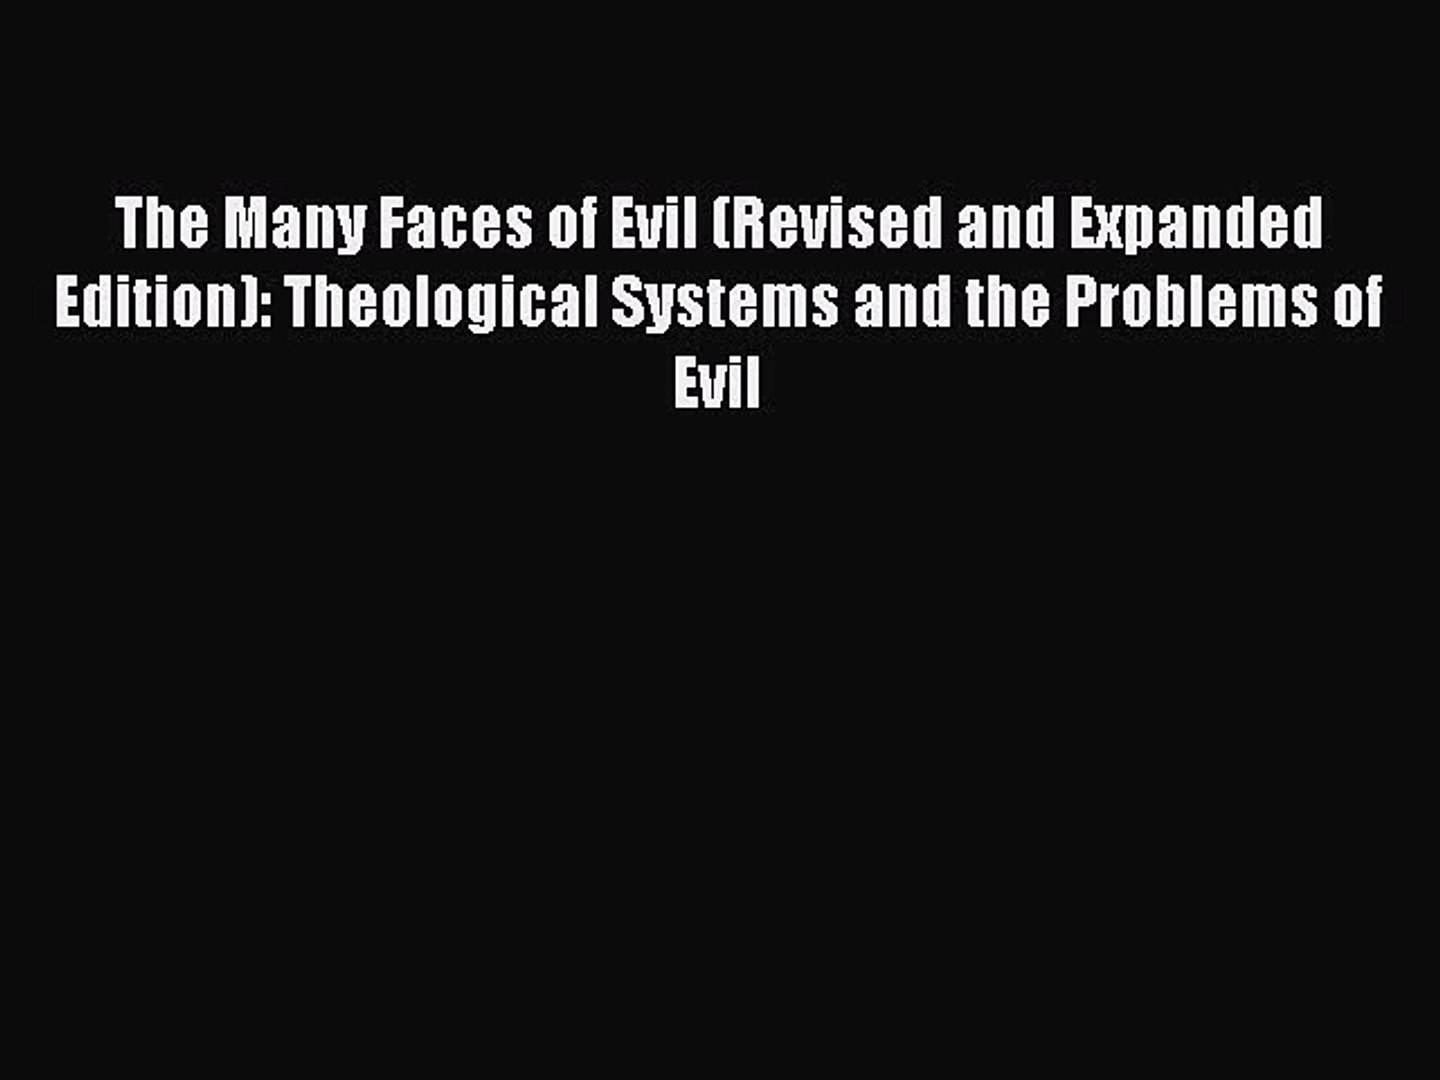 [Read Book] The Many Faces of Evil (Revised and Expanded Edition): Theological Systems and